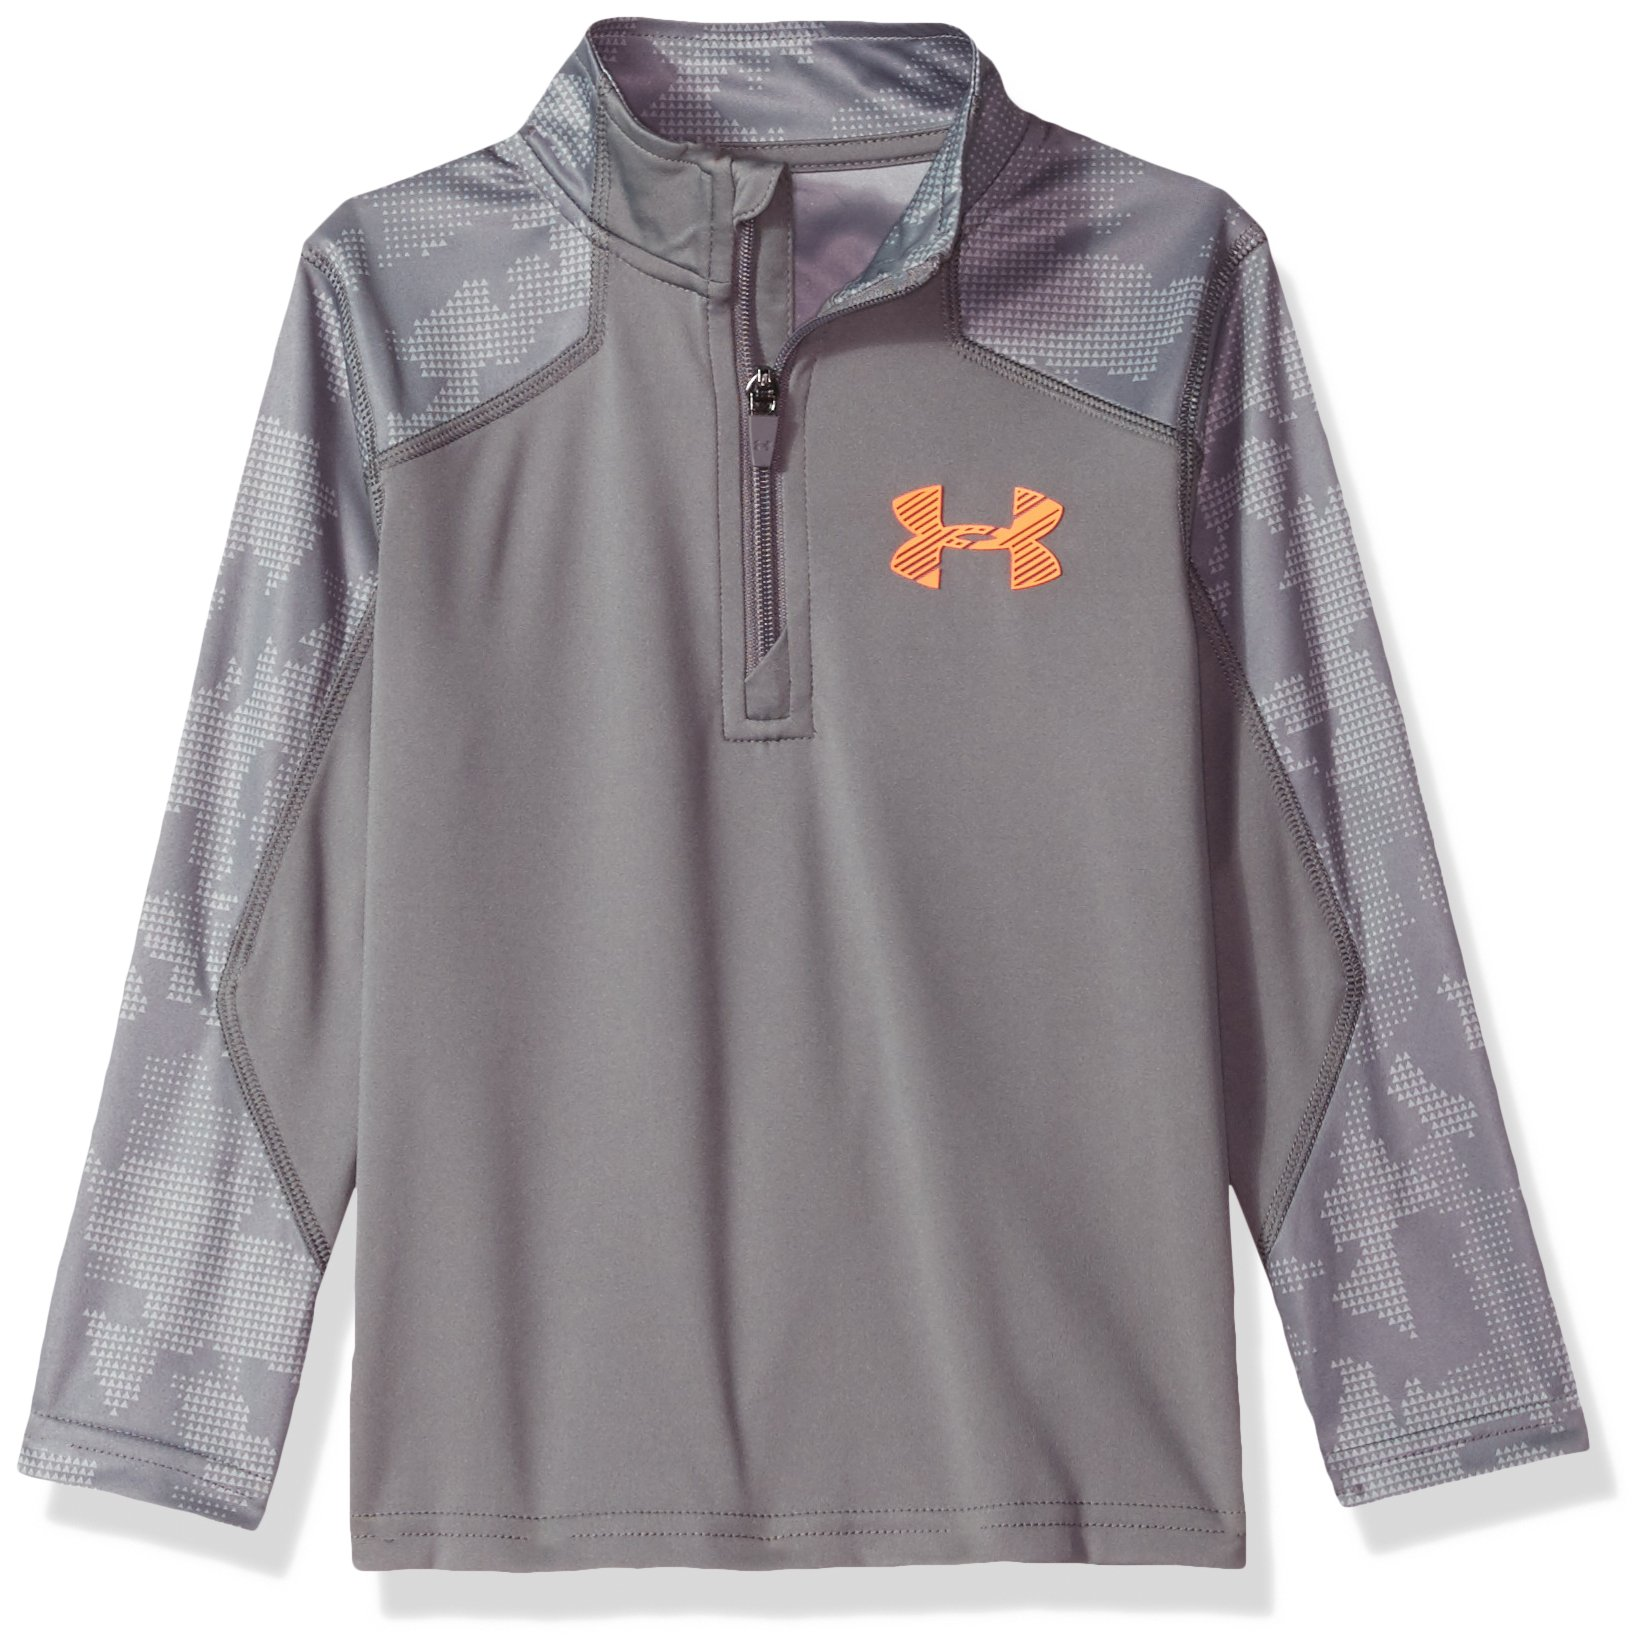 Under Armour Boys' Utility Camo 1/4 Zip, Graphite, 2T by Under Armour